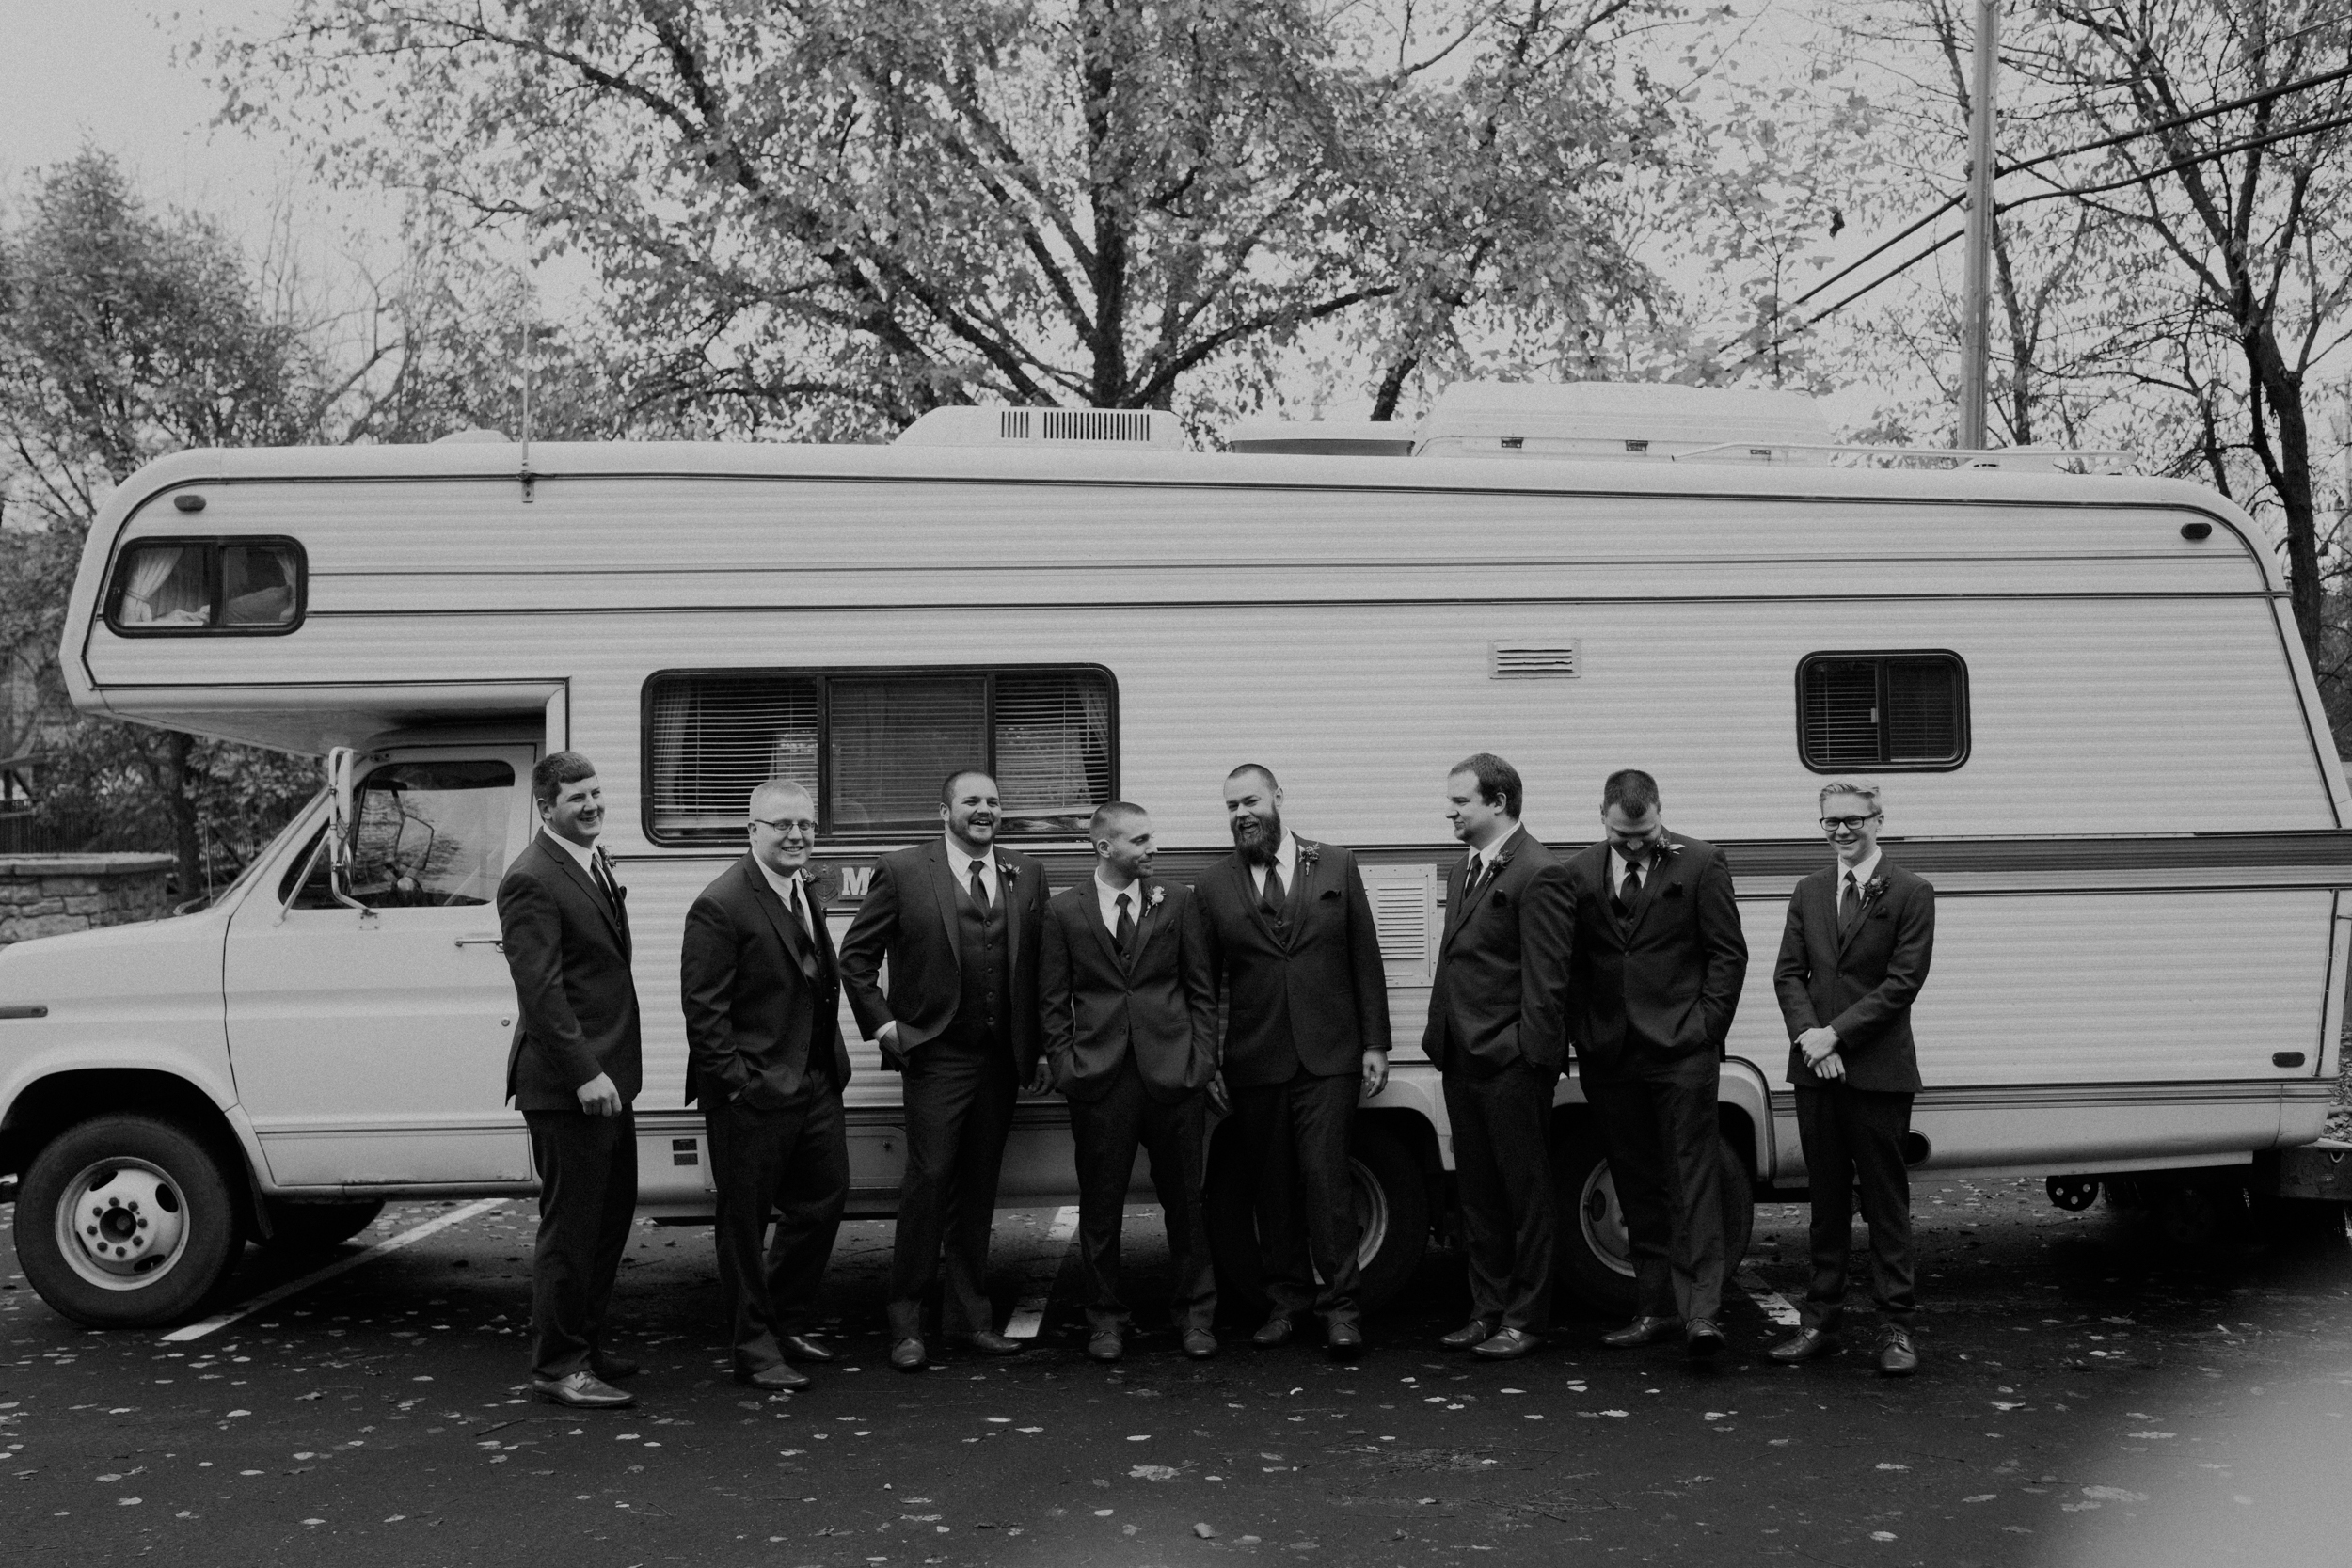 grooms and groomsmen pose in front of an RV at Heritage park in River Falls WI